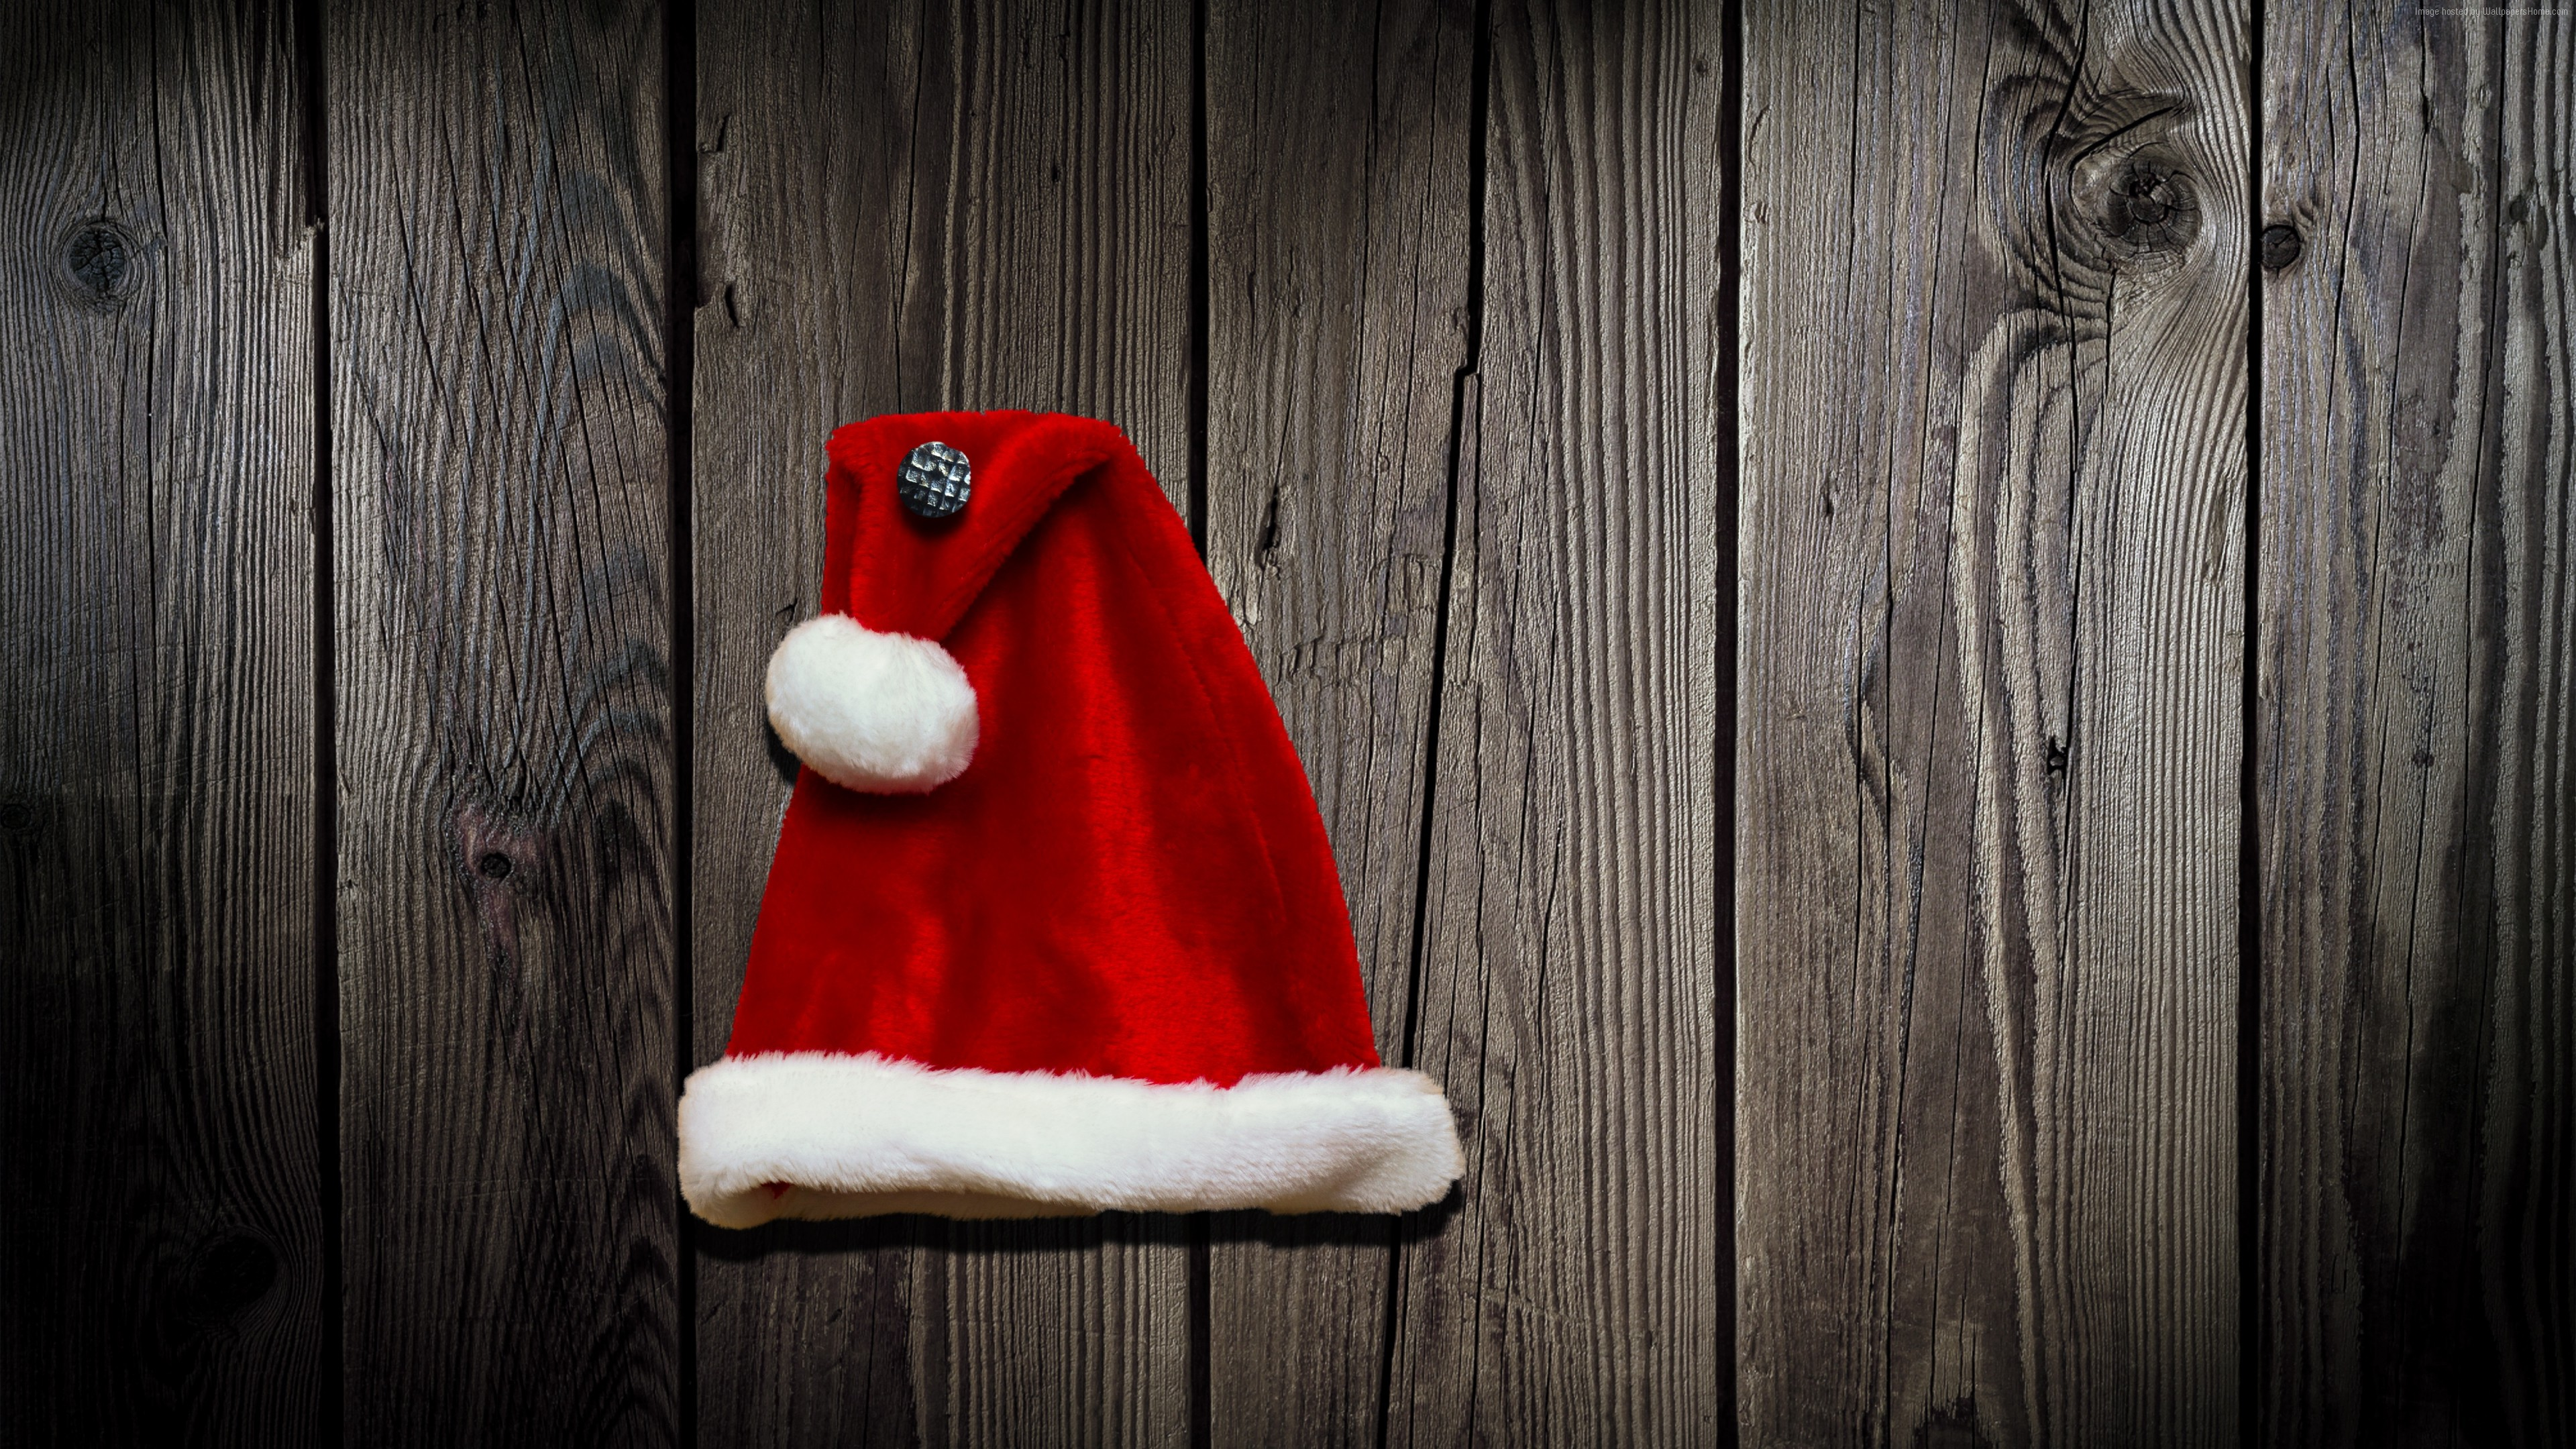 Stock Images Christmas, New Year, cap, 4k, Stock Images